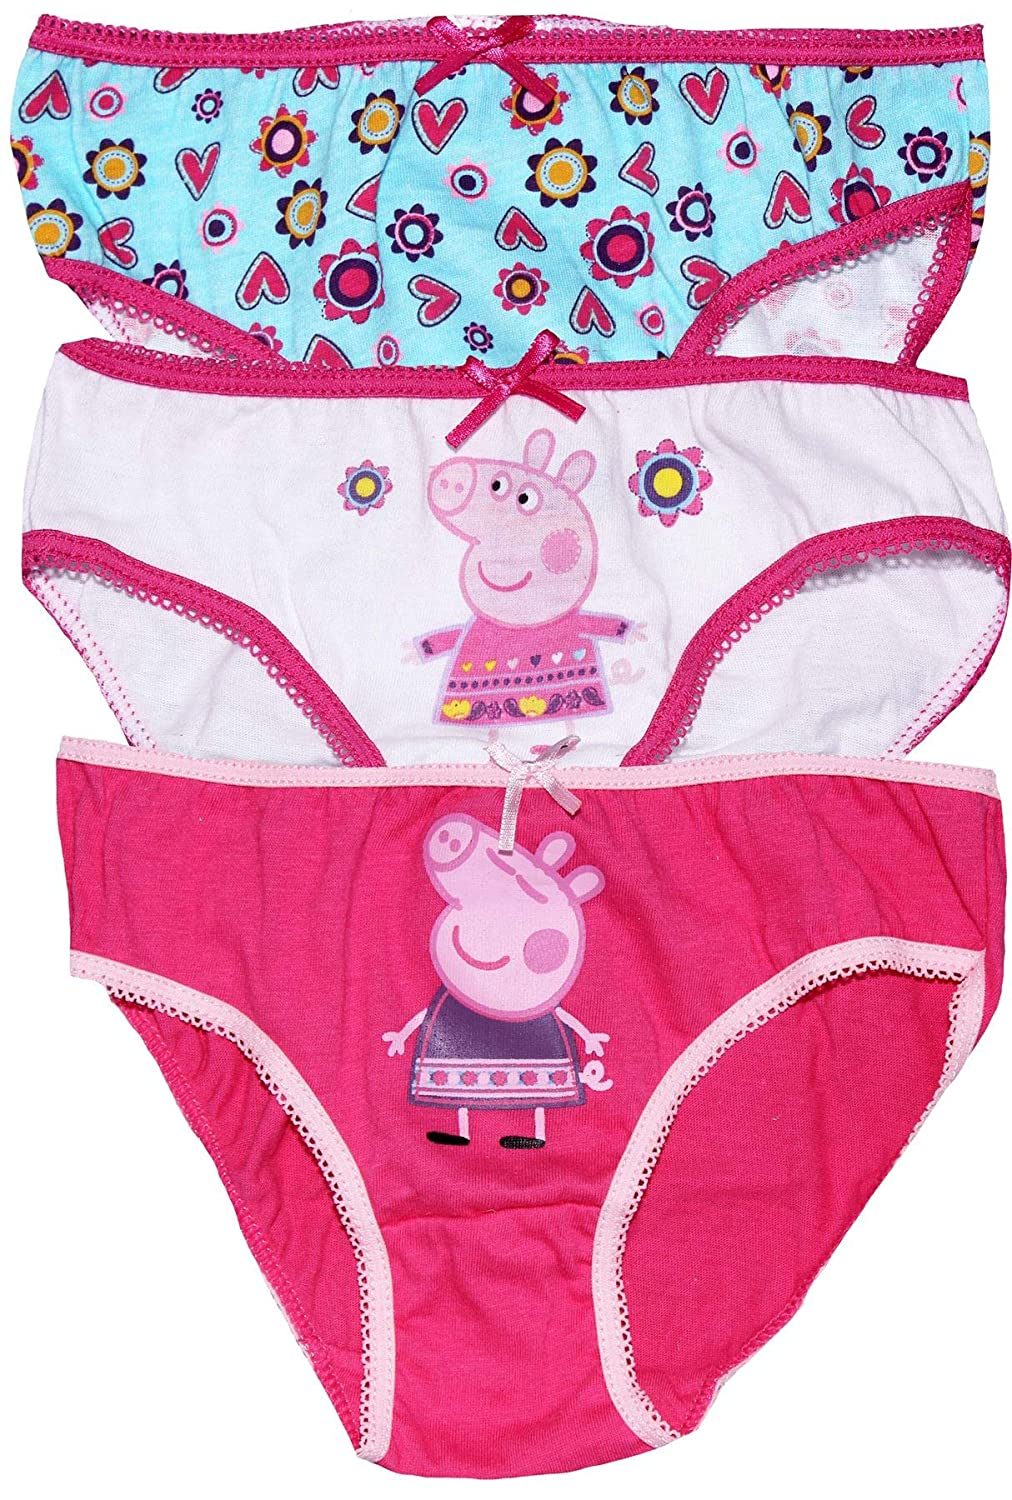 Peppa Pig Girls Three Pack Underwear Knickers Set BestTrend